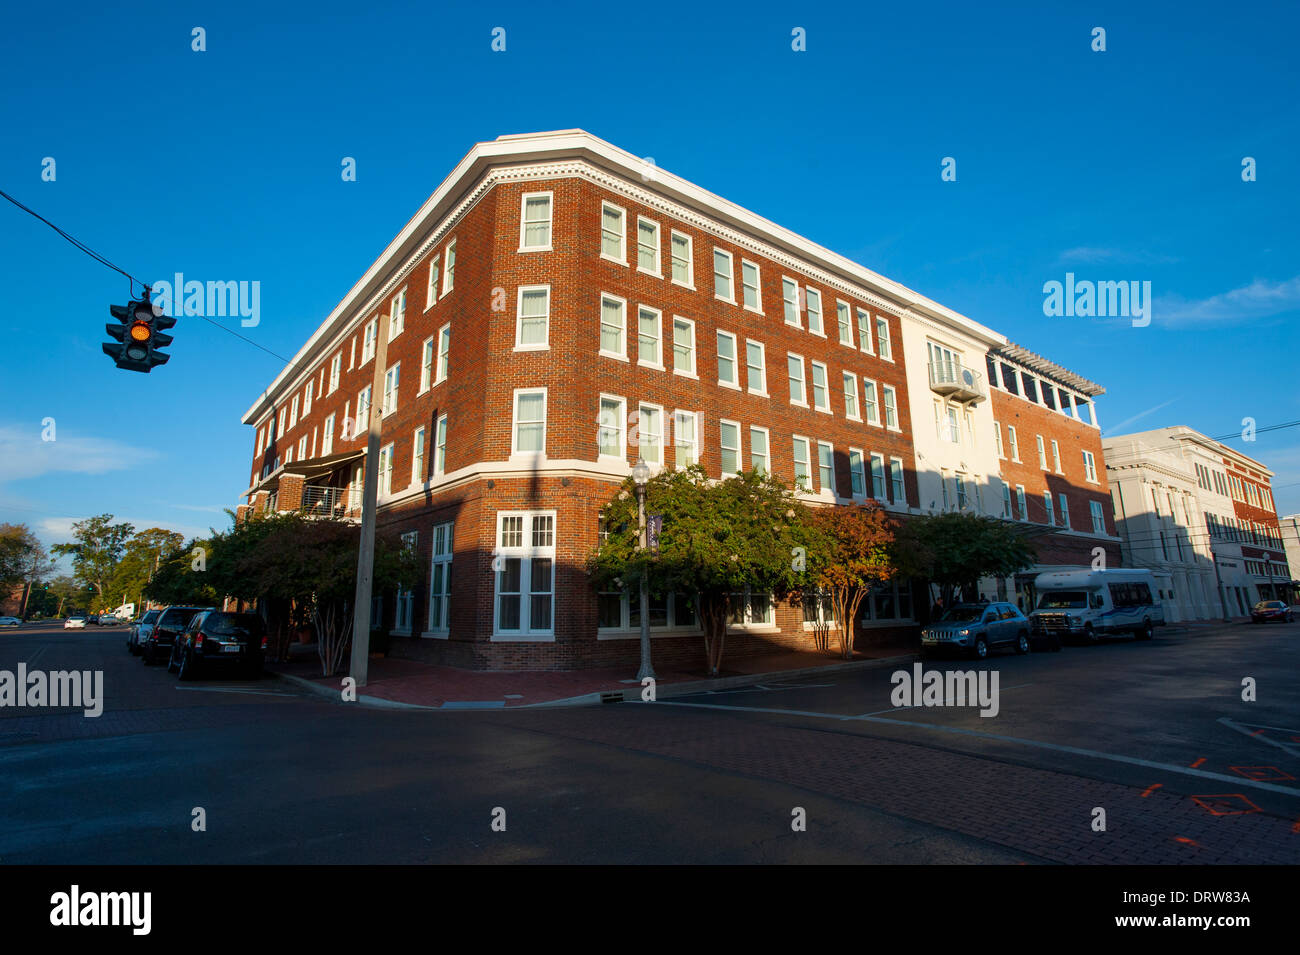 Stock photo usa mississippi ms miss greenwood luxury hotel the alluvian hotel owned by the viking range company upscale fine exterior